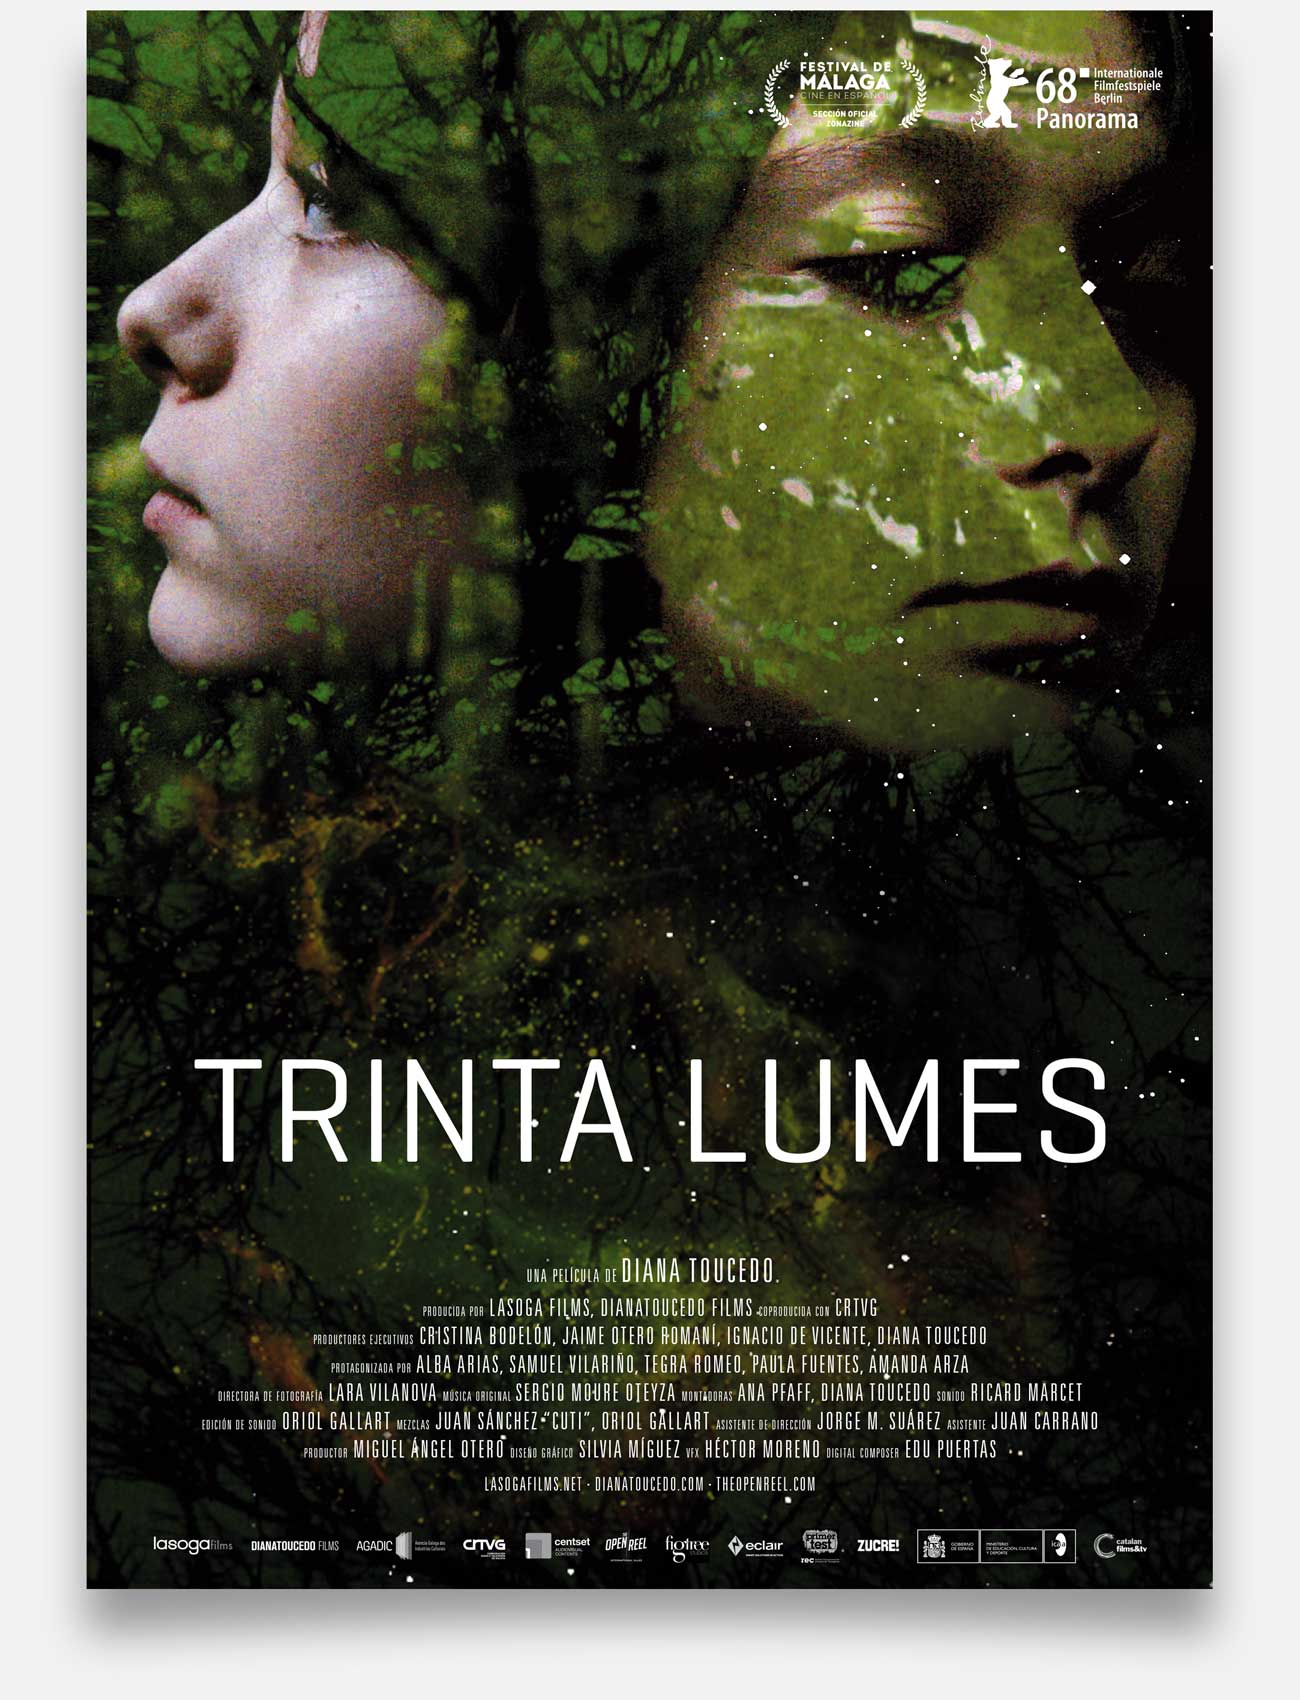 Silvia Miguez-Poster-Movie-Thirty Souls / Trinta Lumes